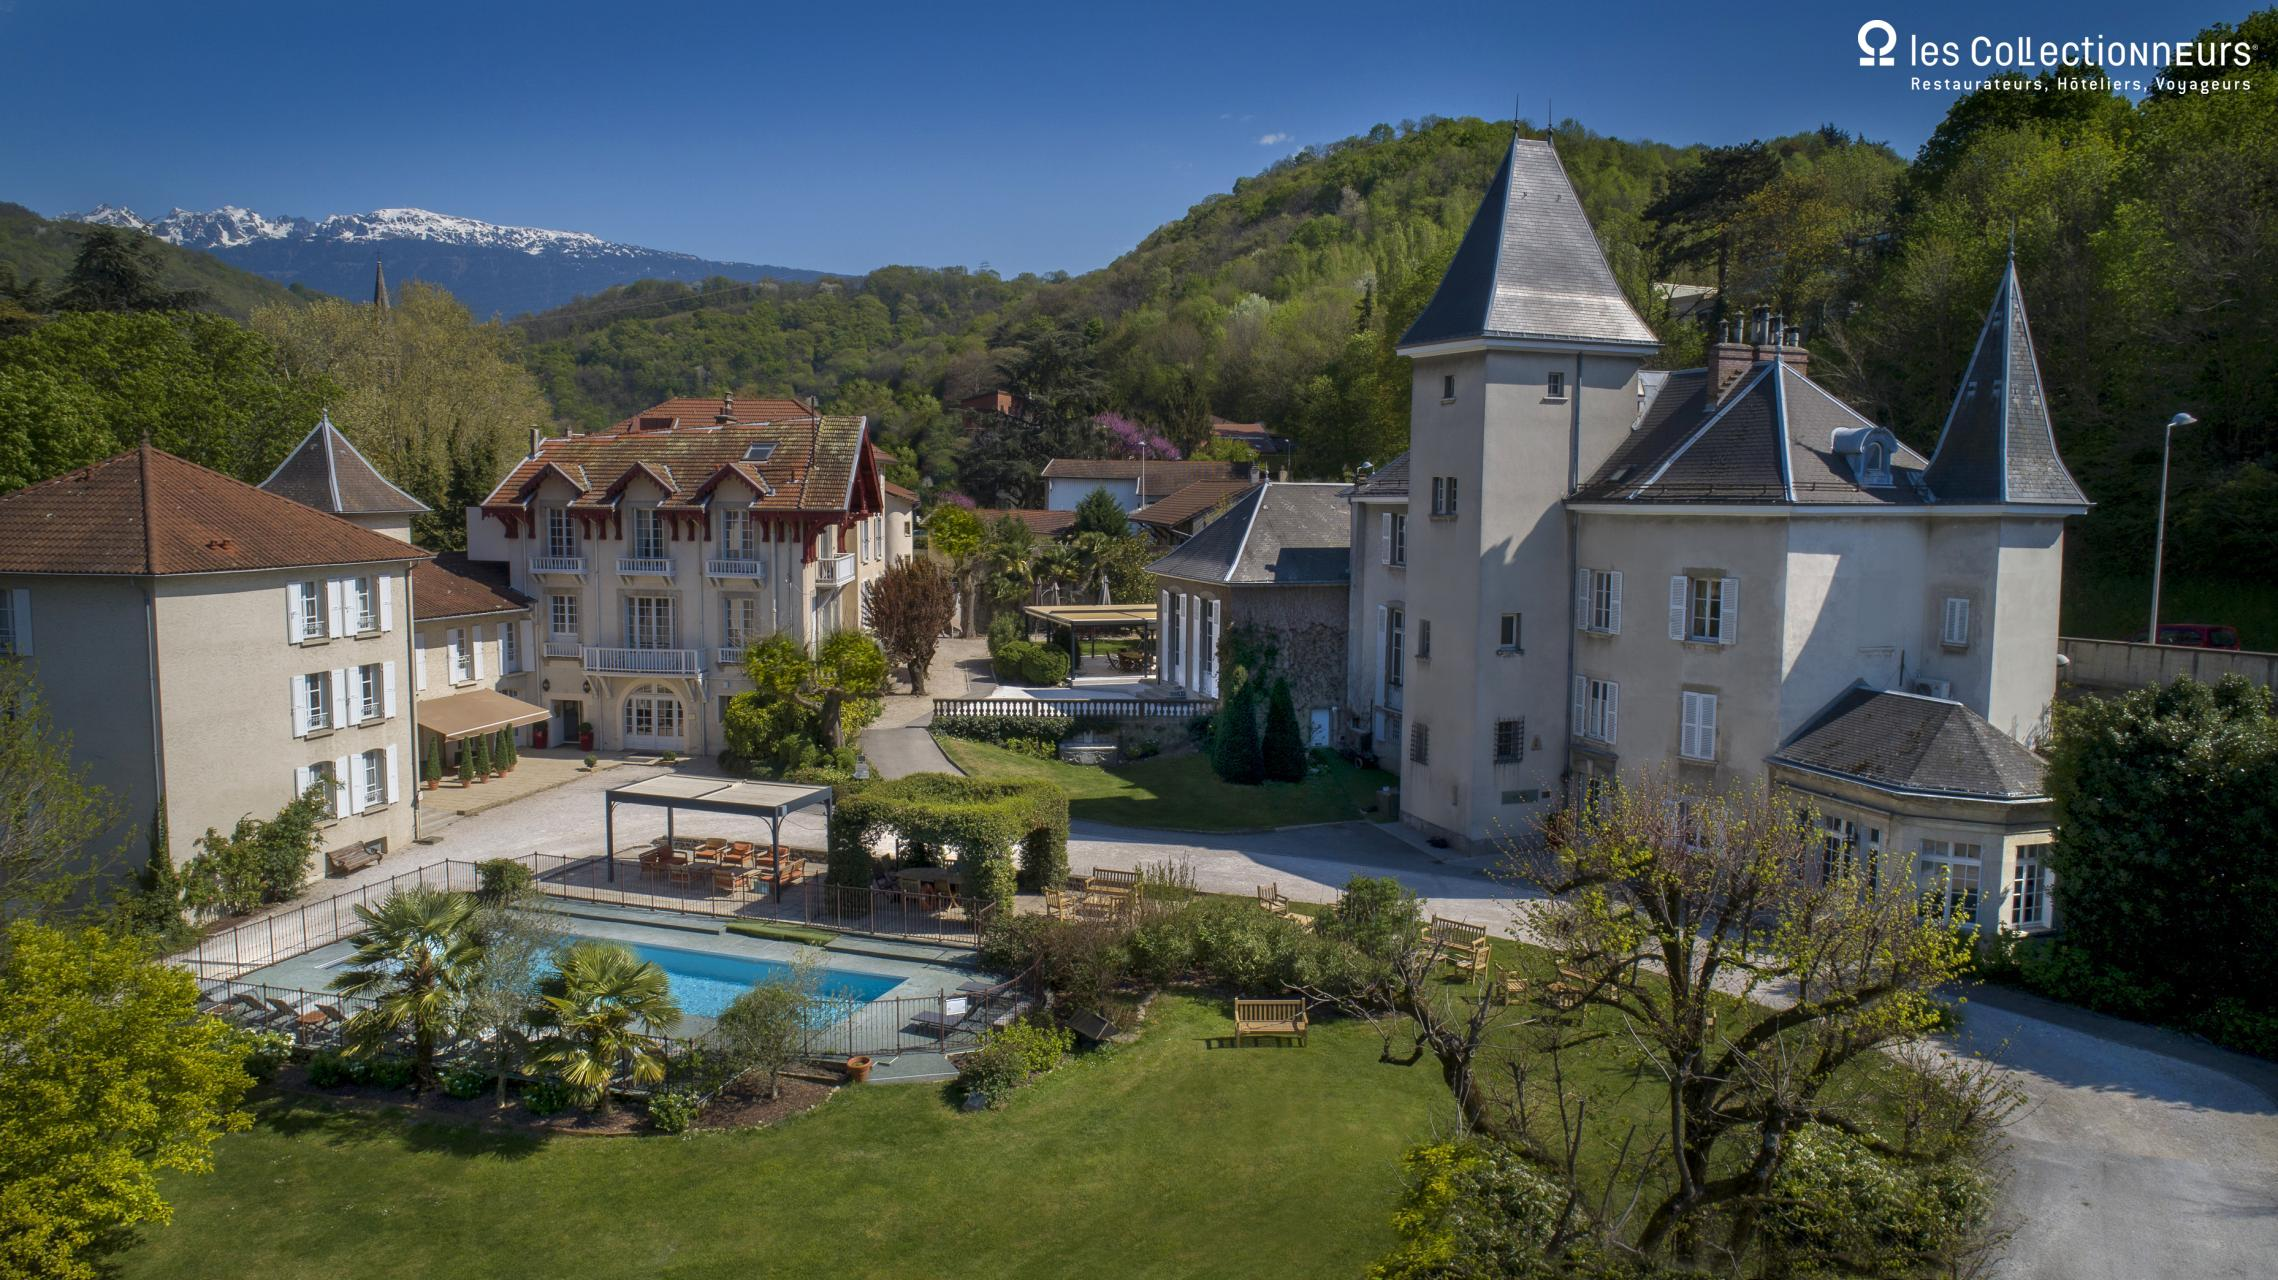 Chateau Et Spa De La Commanderie Charming Hotel In Rhone Alpes